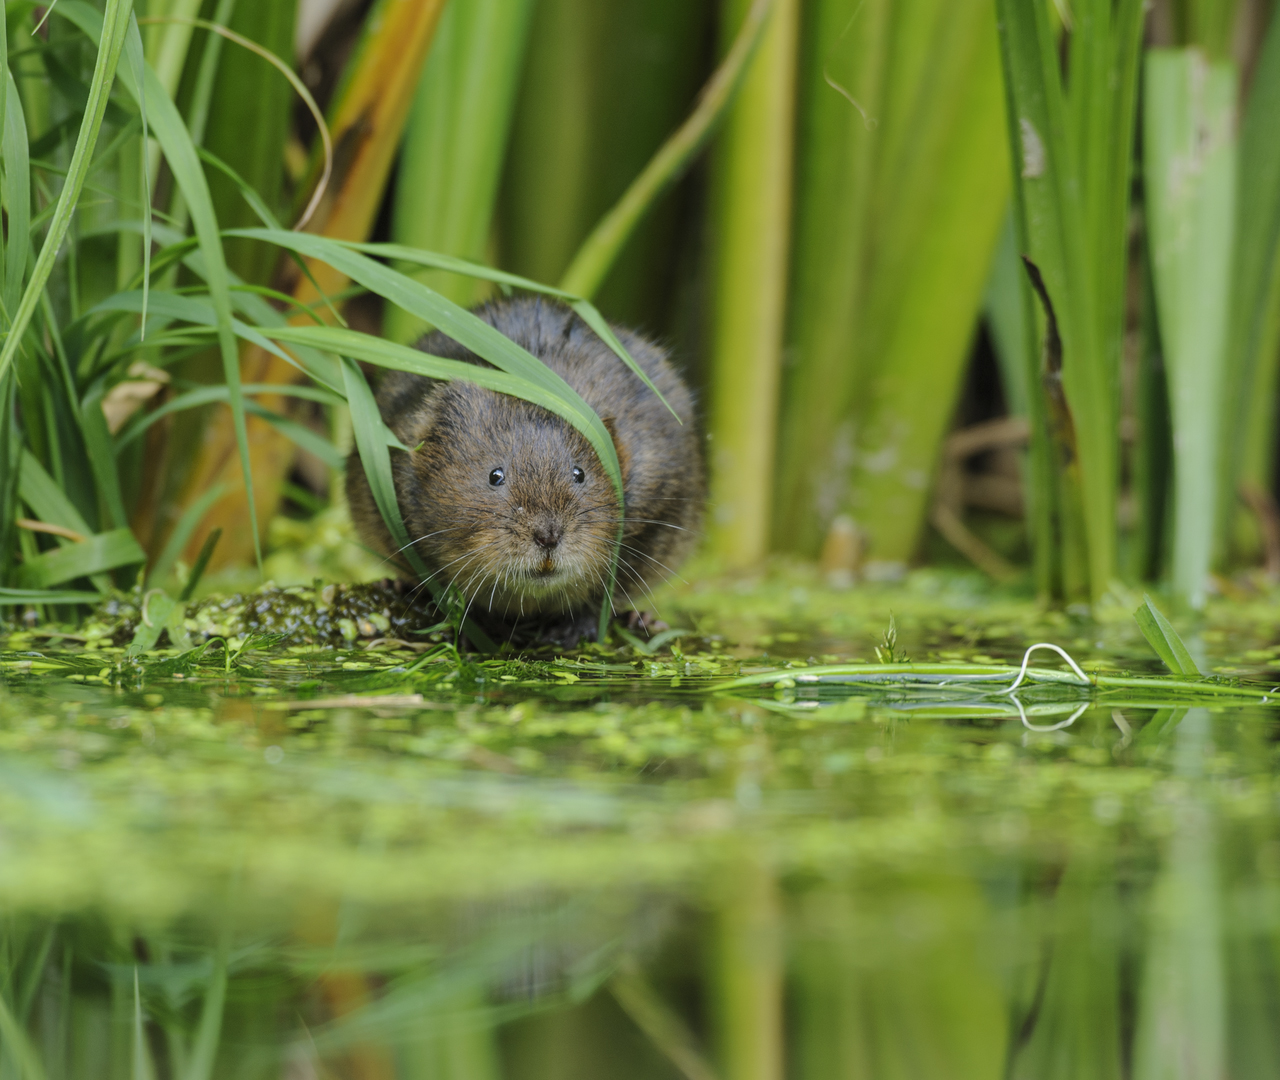 Water Vole - Image Credit: Terry Whittaker / 2020 Vision